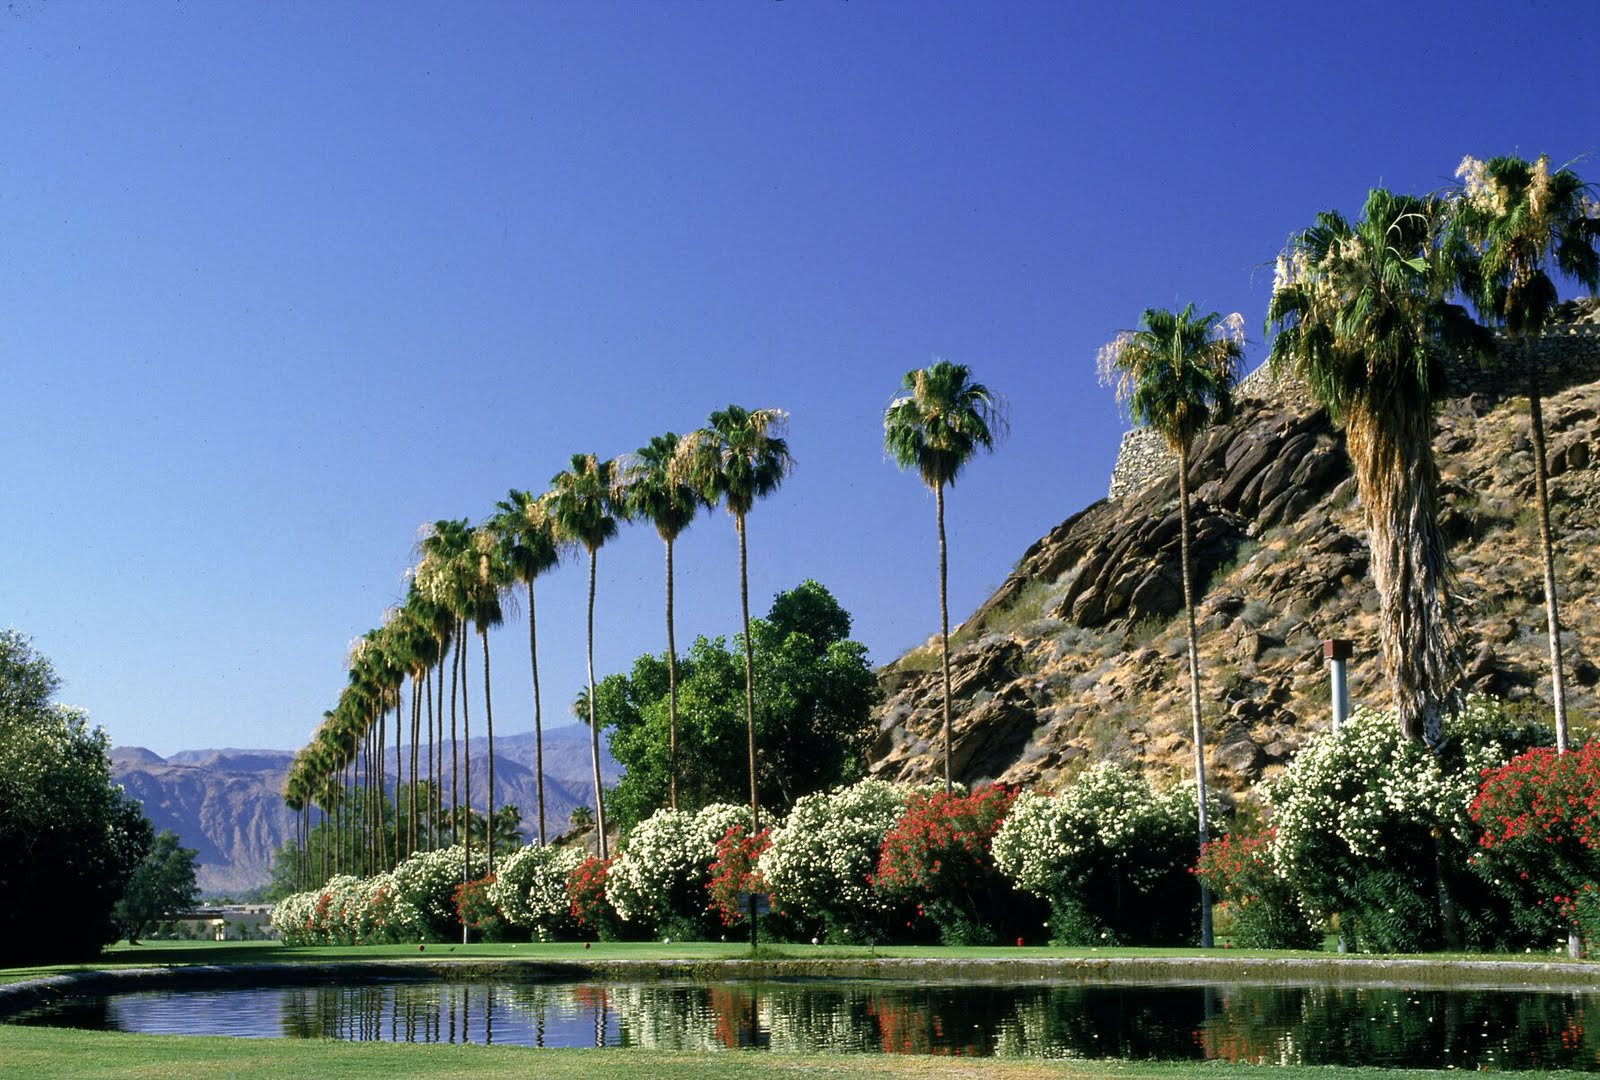 palm springs california We roll our eyes. But Bass' promotion   a contest to win a free official ...